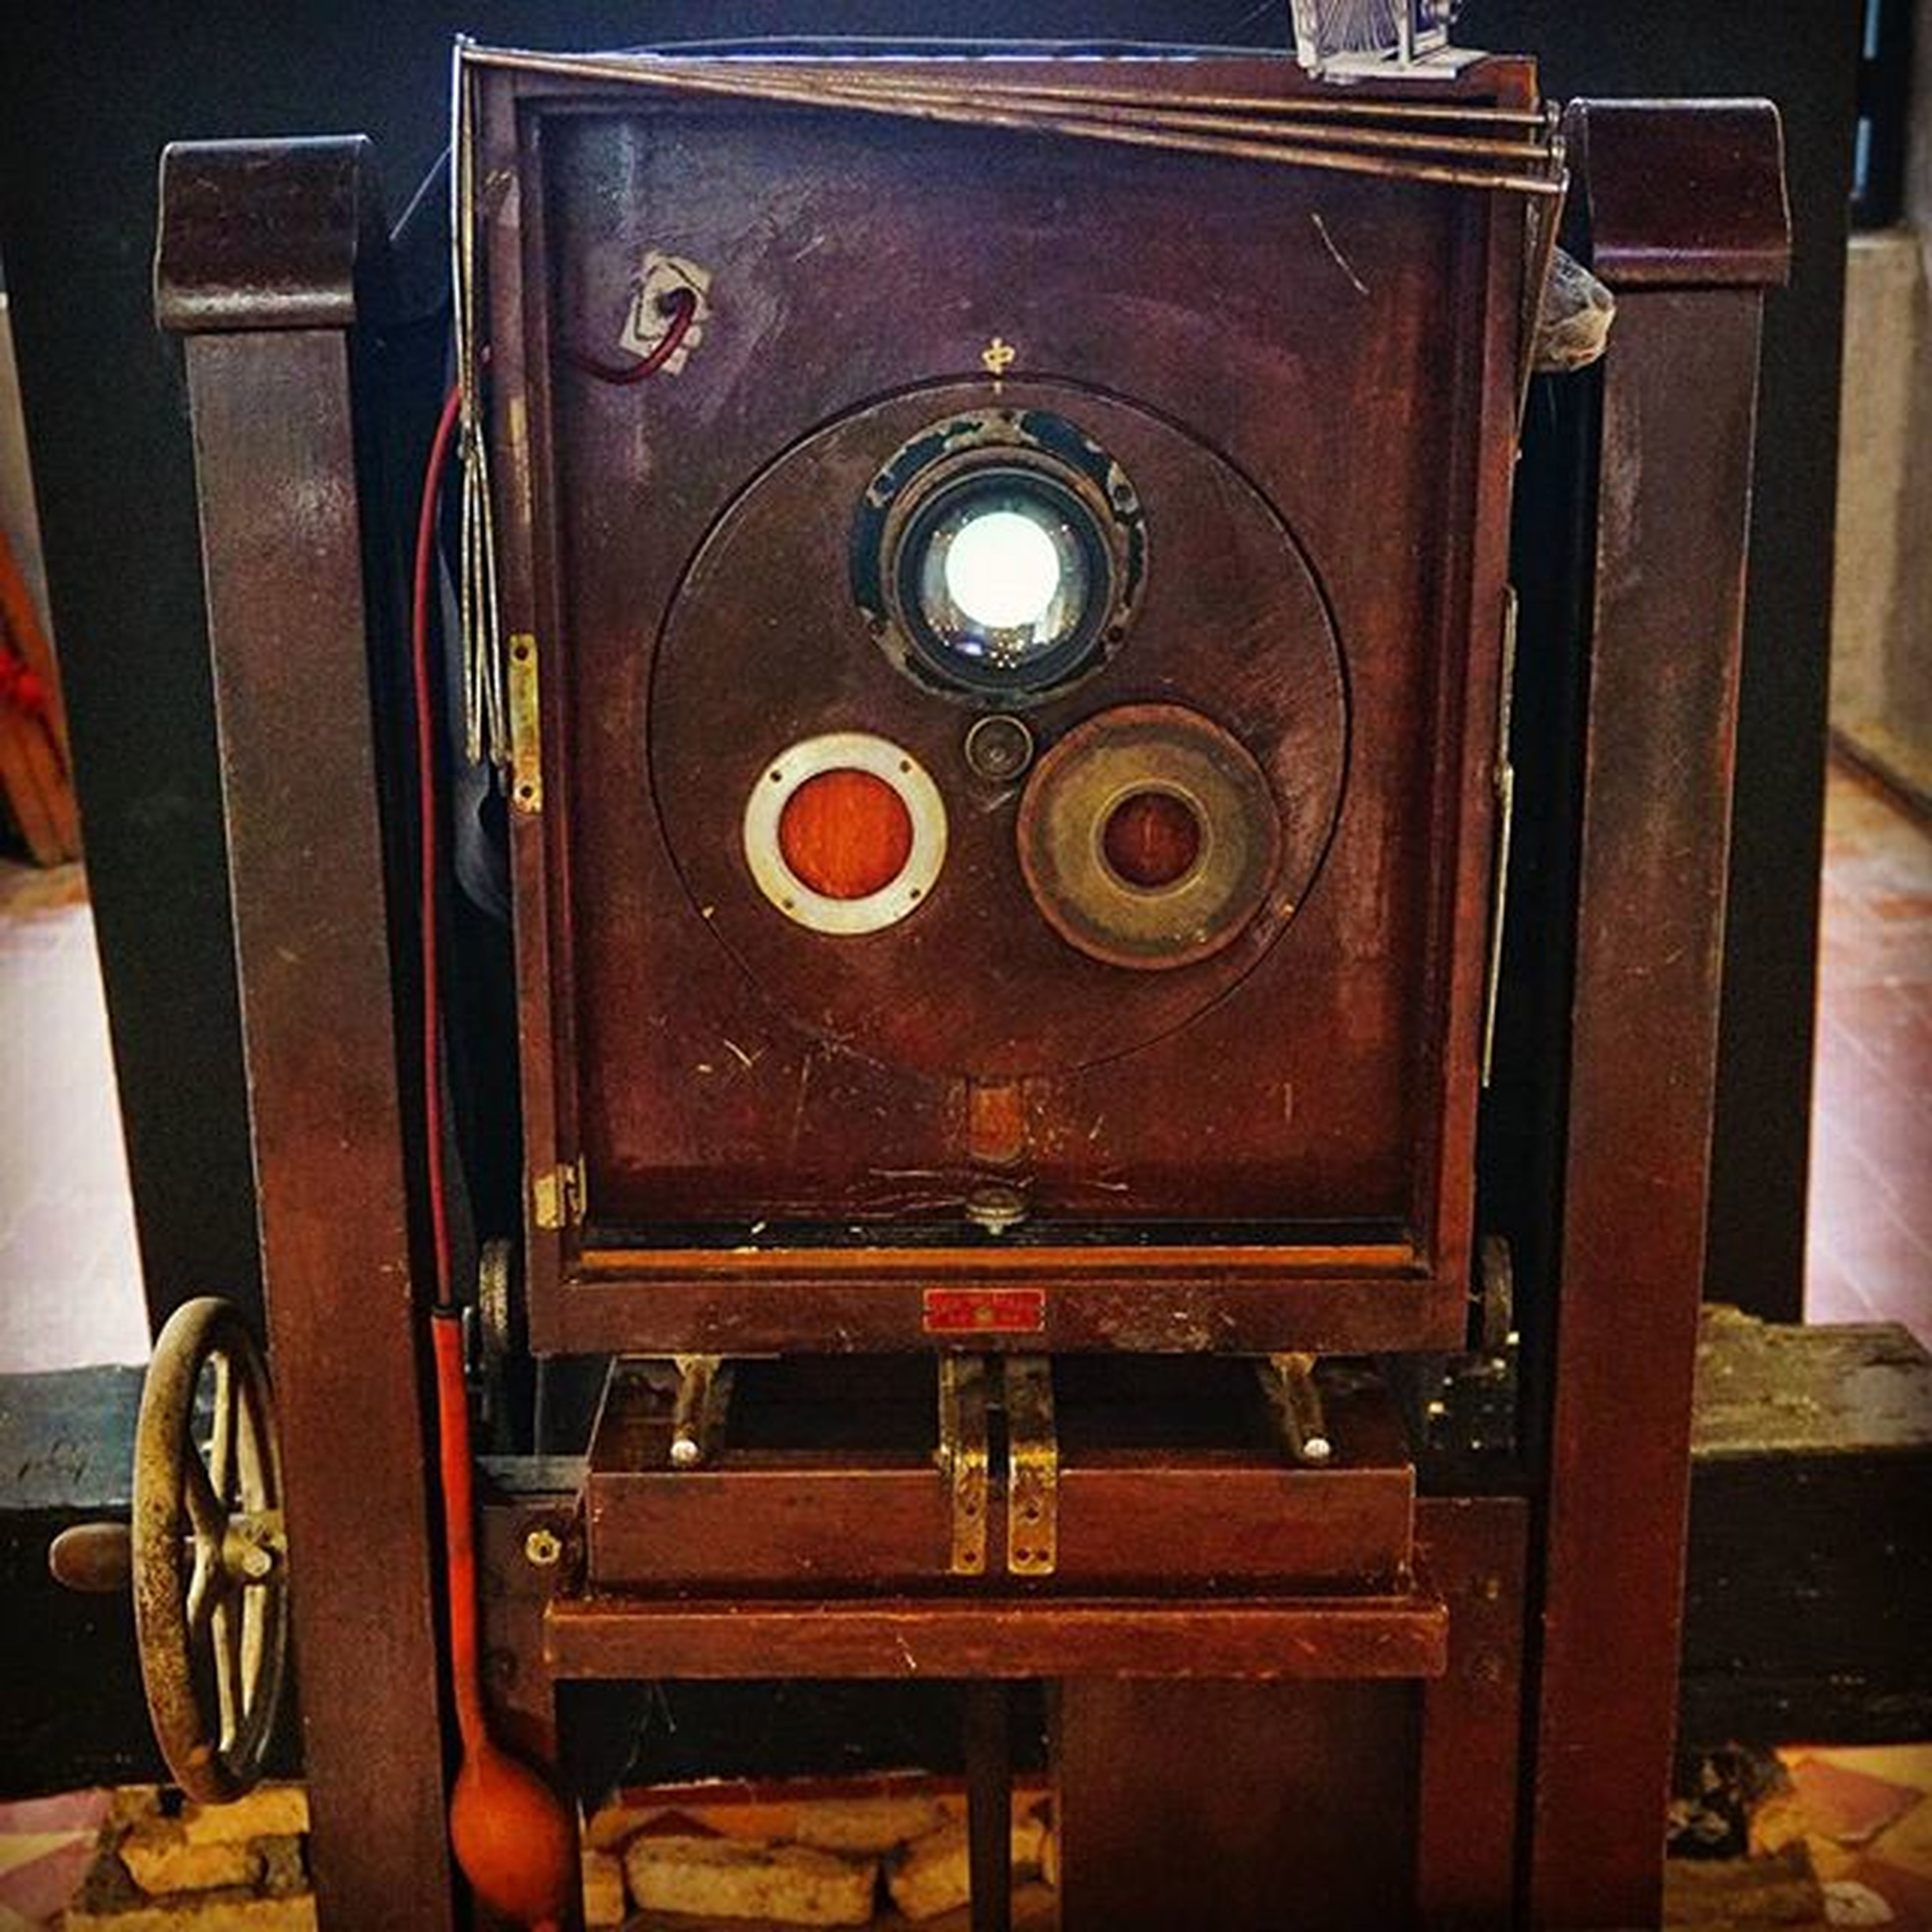 Worlds oldest view camera. Penang photo museum. Photography Camera Oldcameras Museum Viewcamera